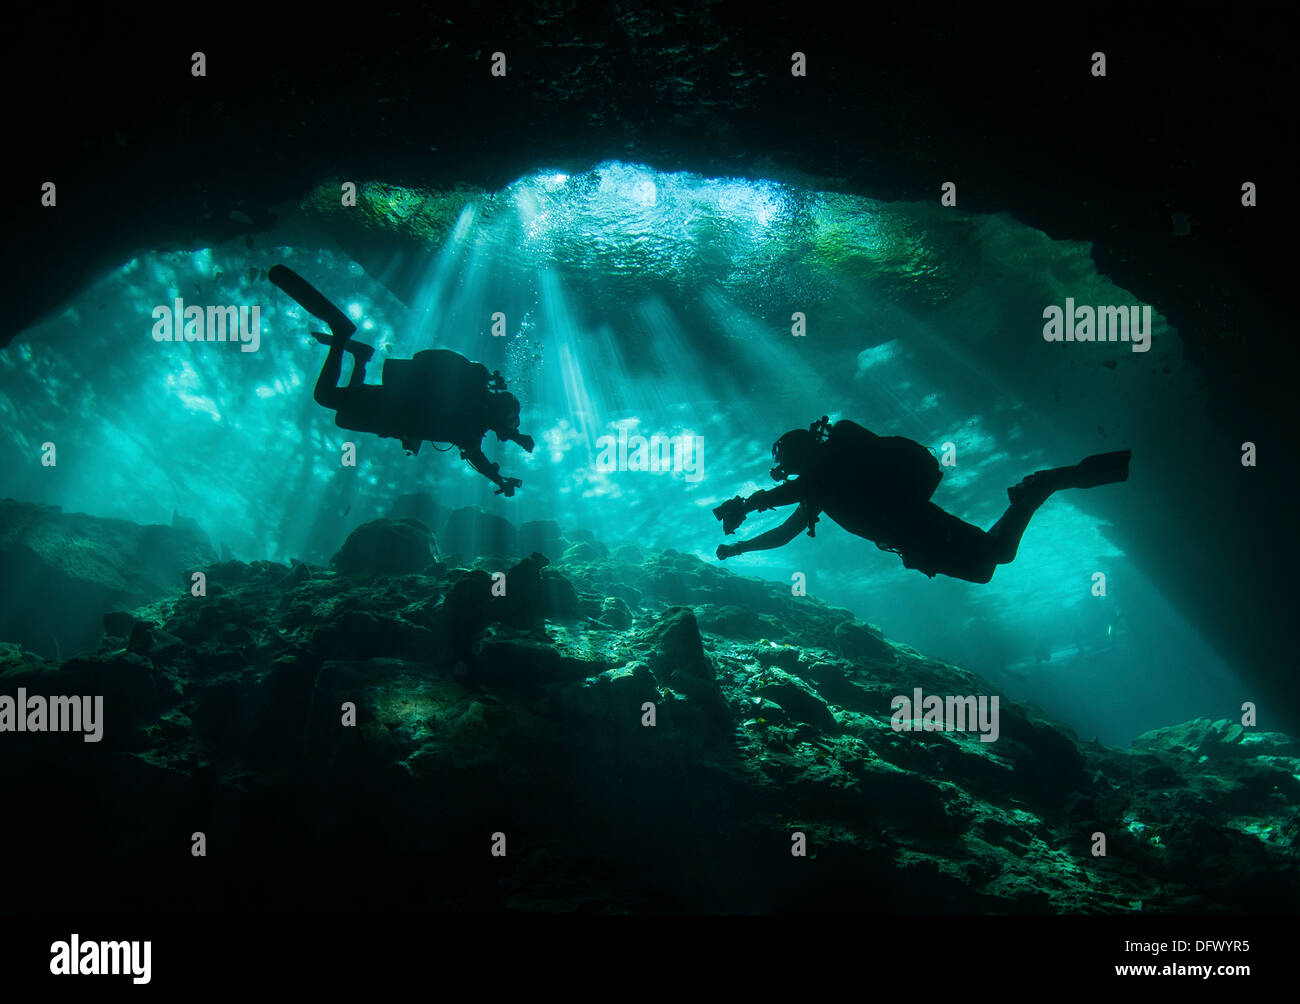 Two divers silhouetted in light at entrance to Chac Mool cenote, Mexico. - Stock Image